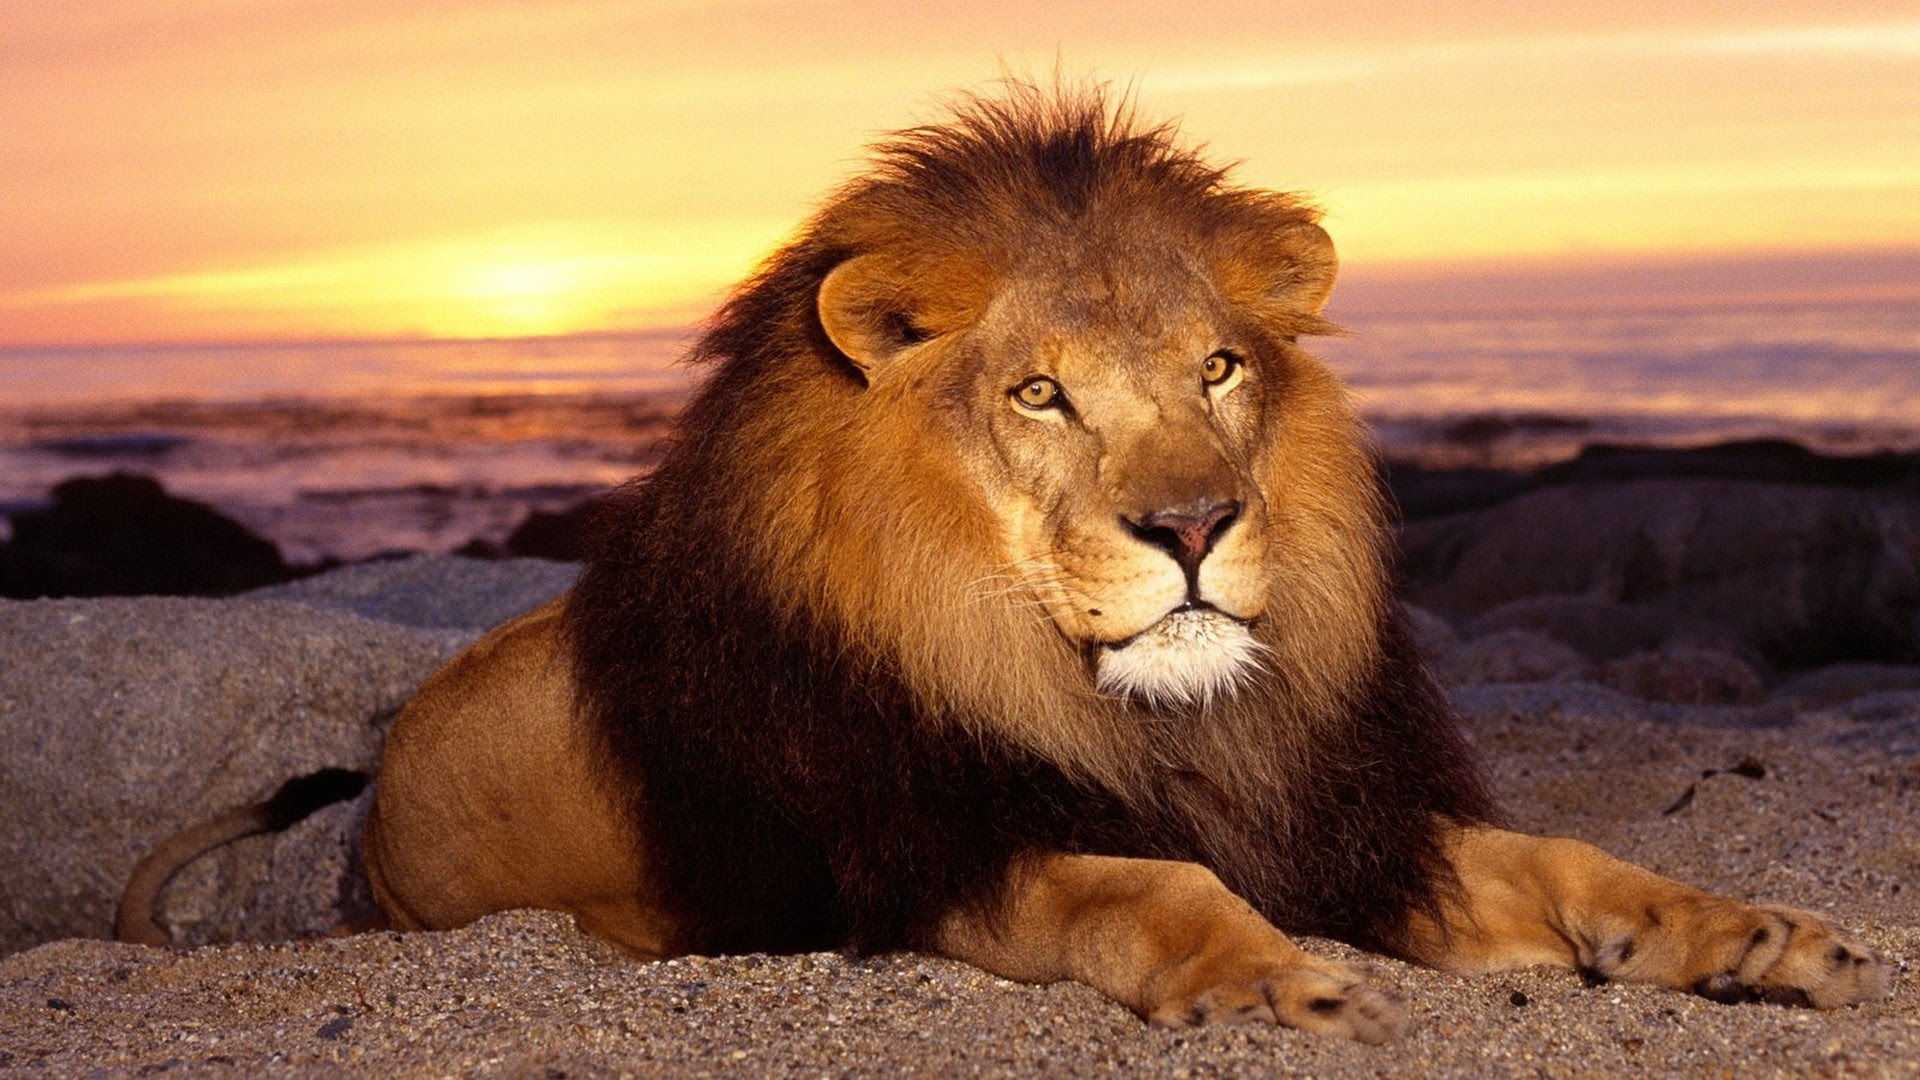 Beautiful Hd 1080p Full Hd Angry Lion Wallpaper Images